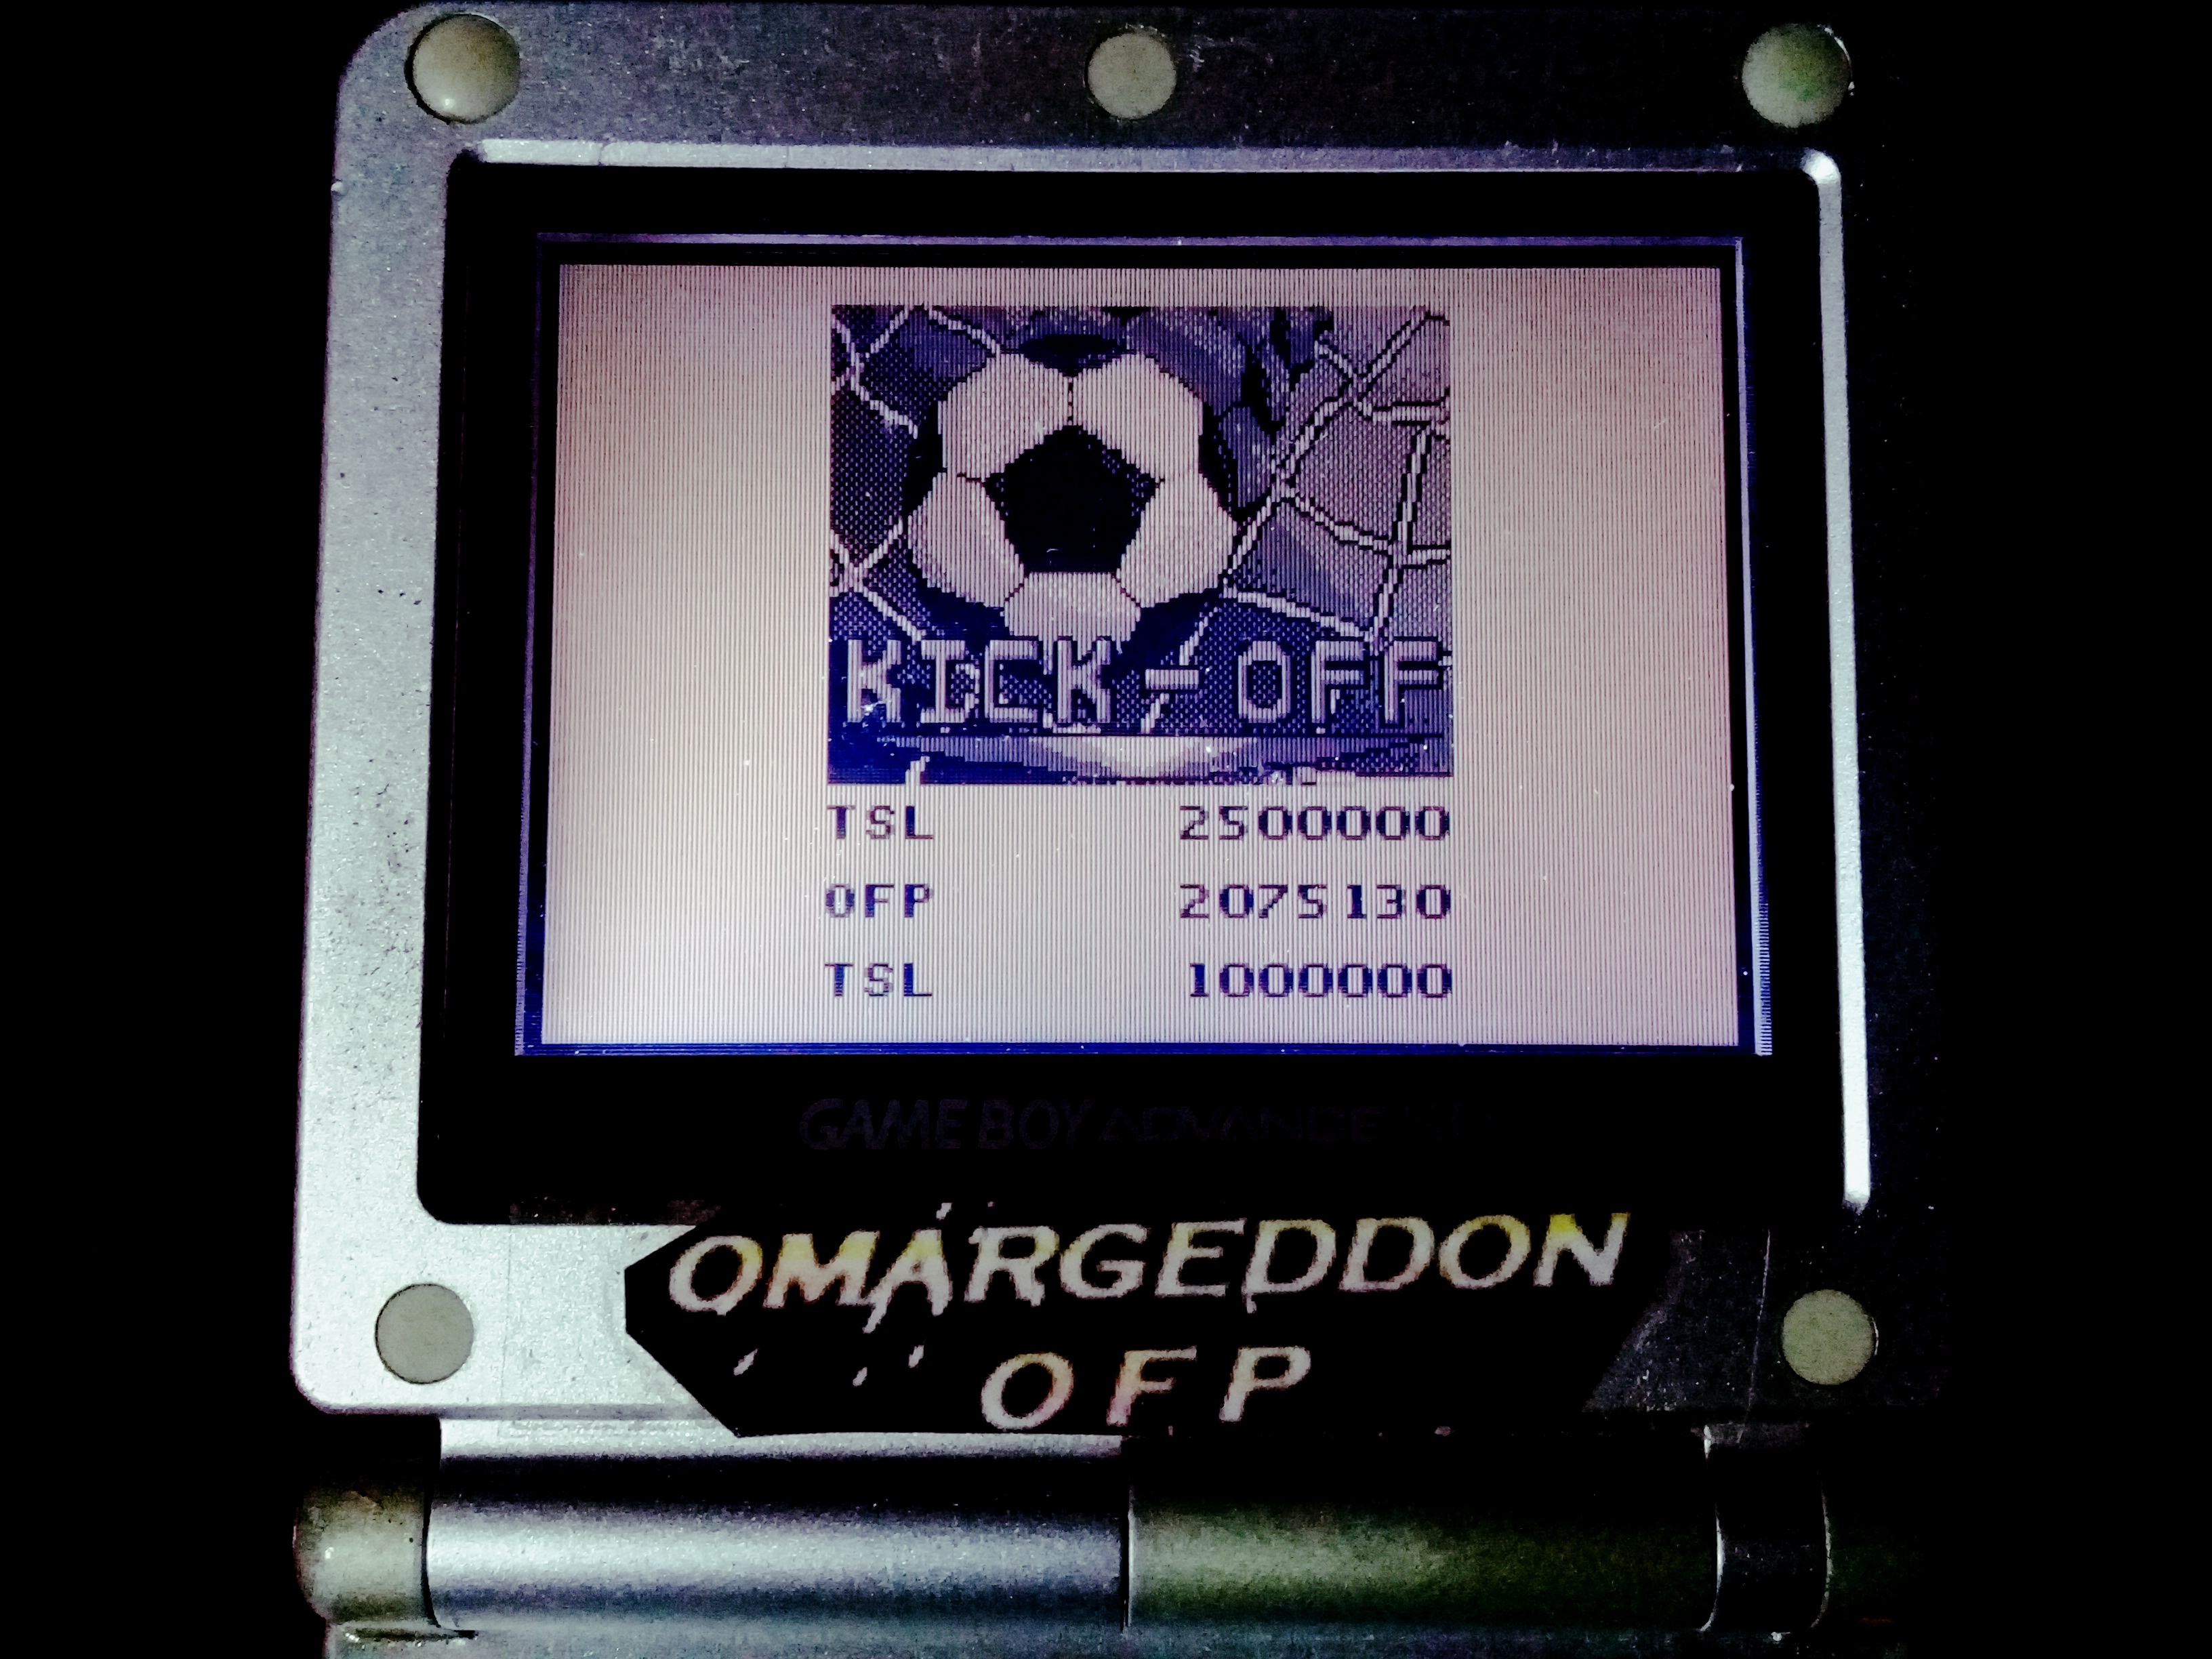 omargeddon: Pinball Mania: Kick-Off (Game Boy) 2,075,130 points on 2019-11-25 09:32:39